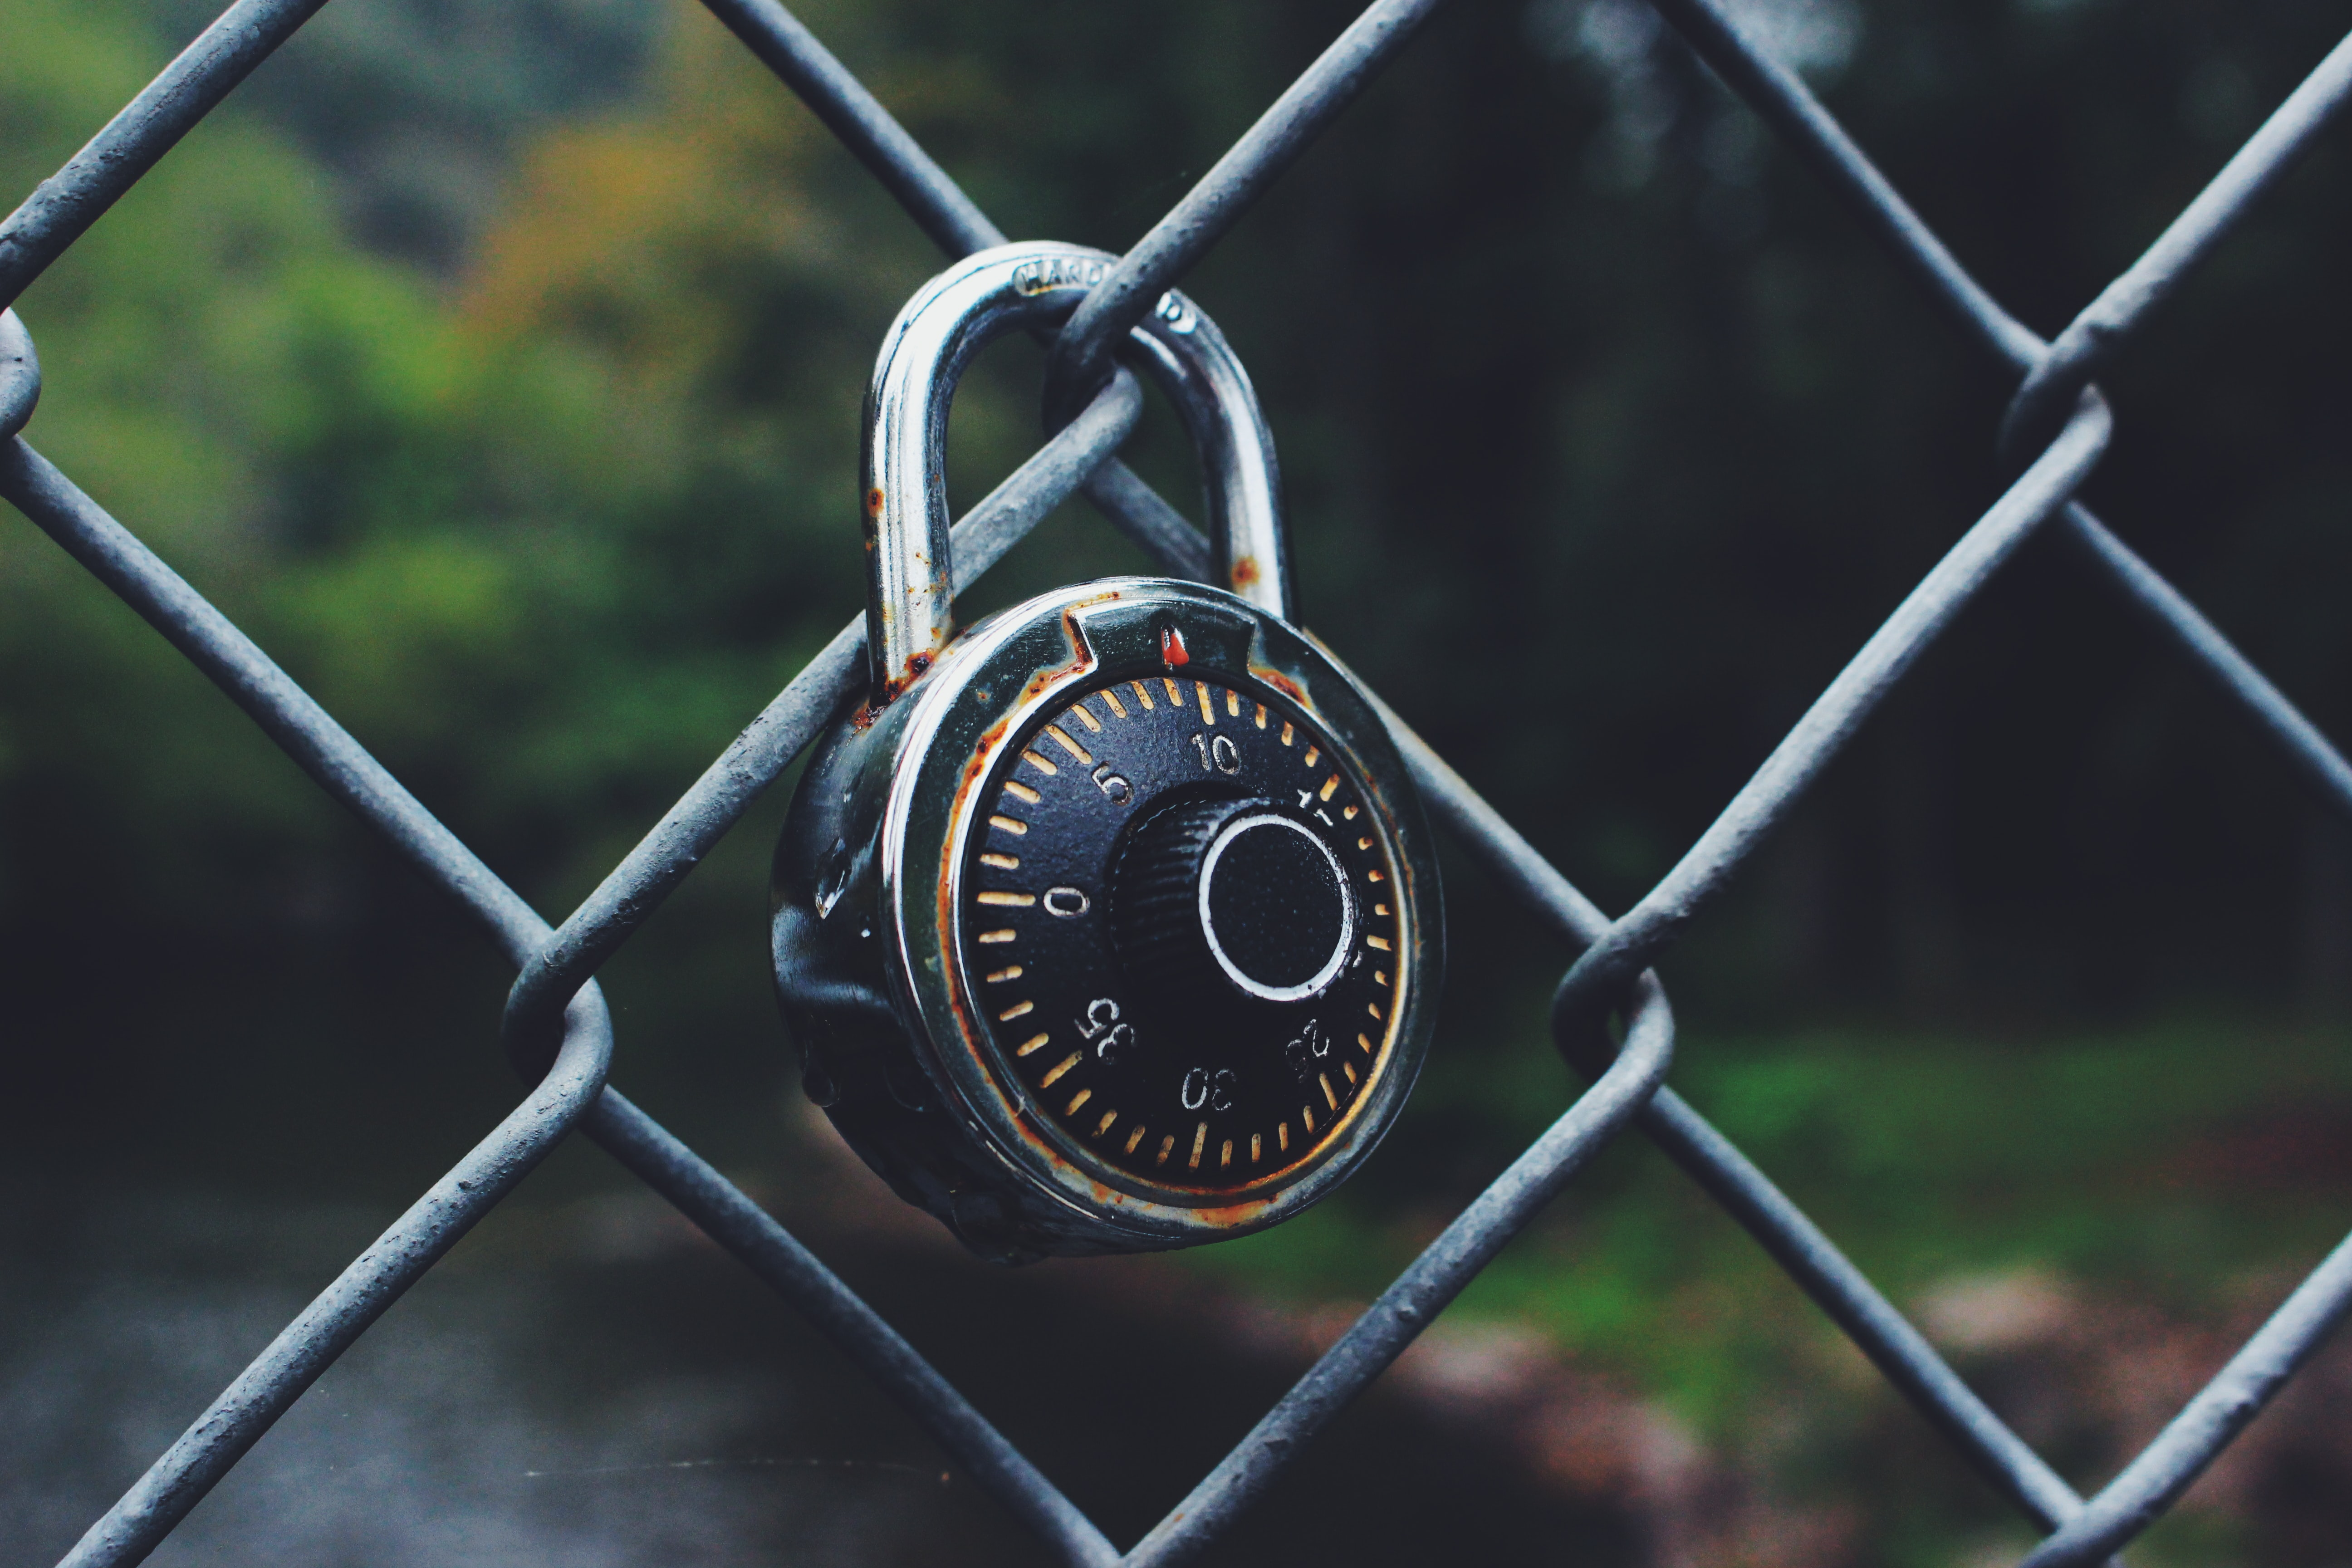 black and gray code padlock anchored on chain-link fence selective focus photo